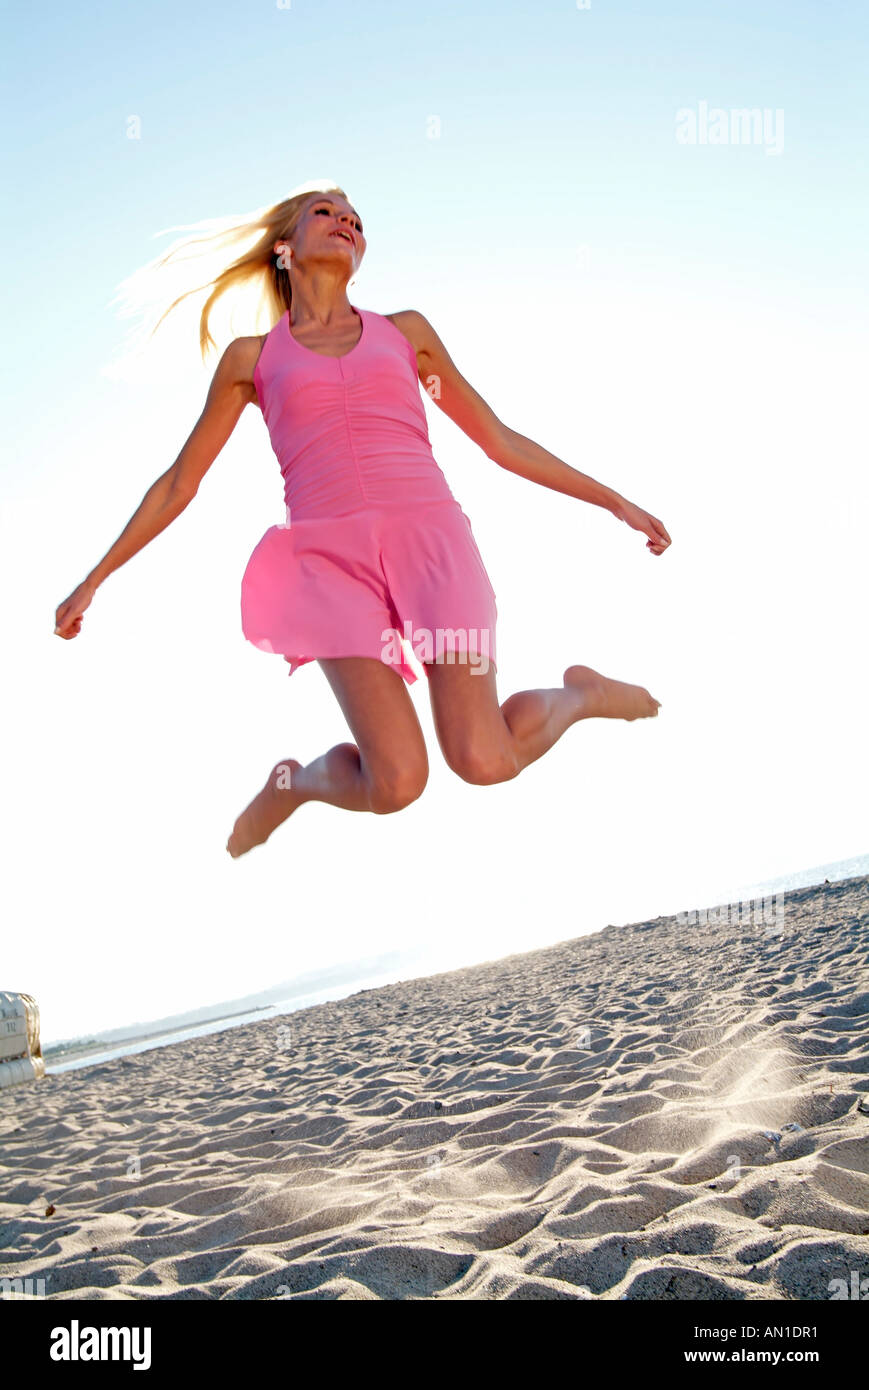 Young woman jumping at beachfront Photo Stock